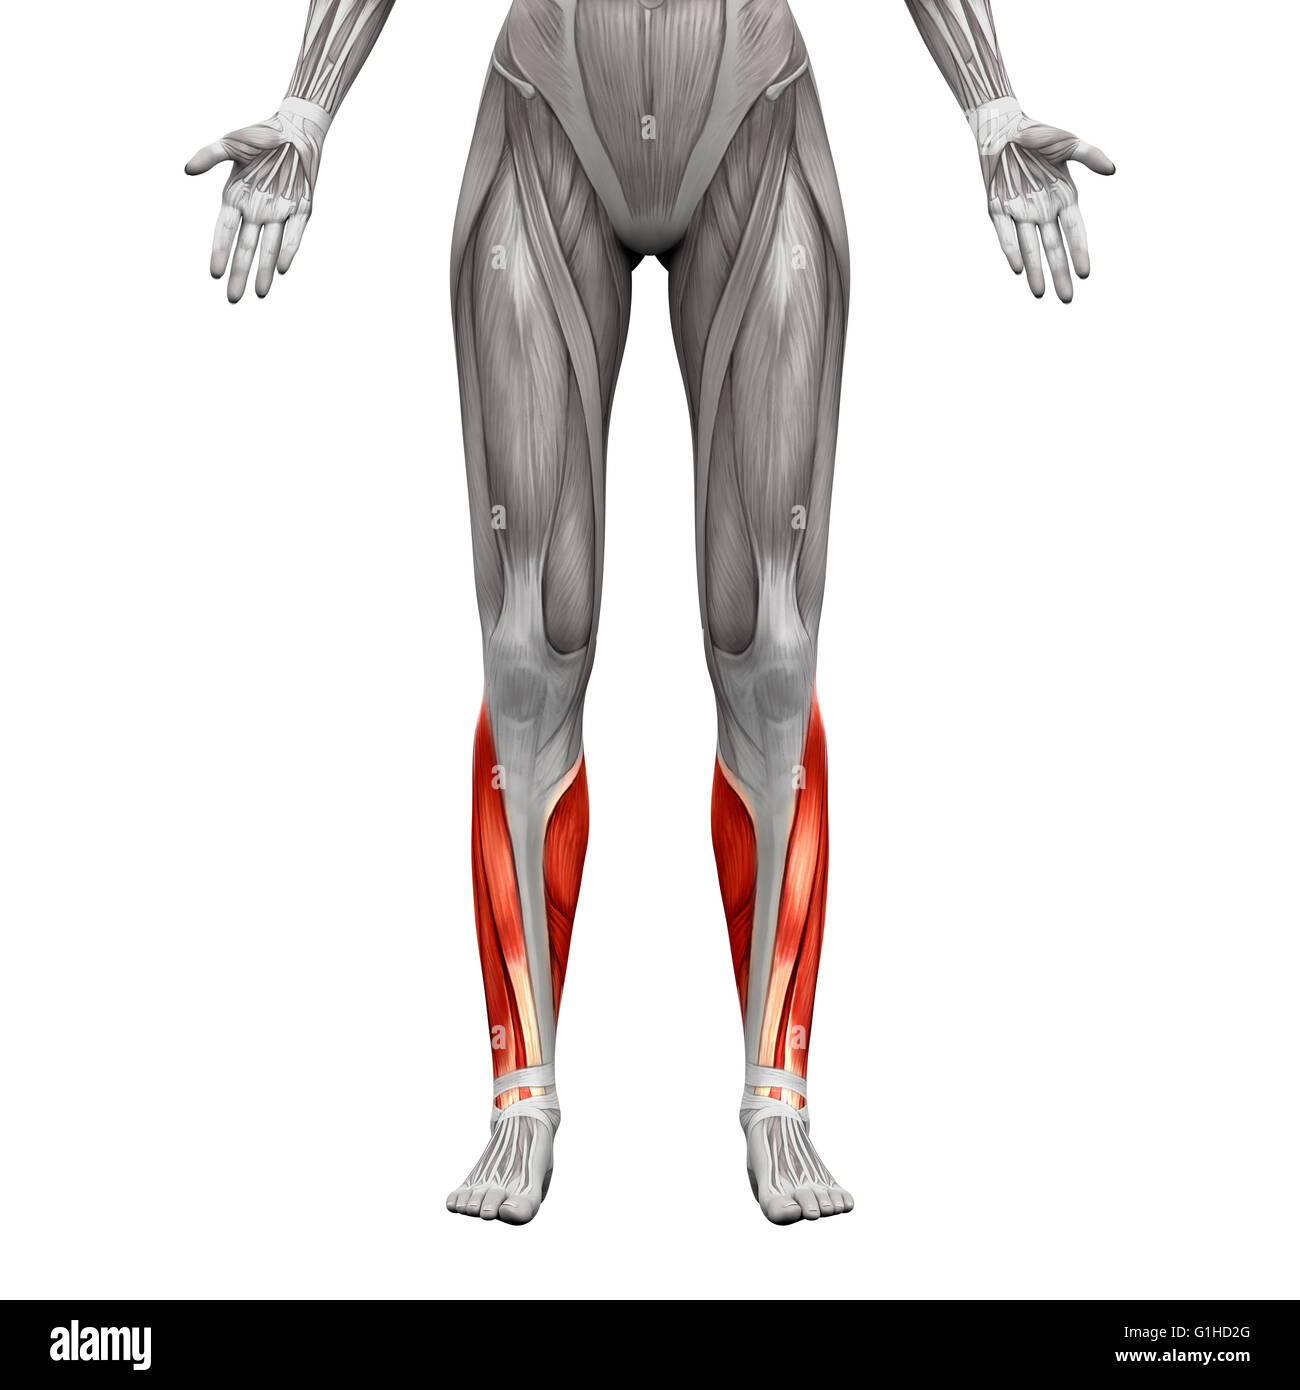 Gastrocnemius Muscle Stock Photos Gastrocnemius Muscle Stock